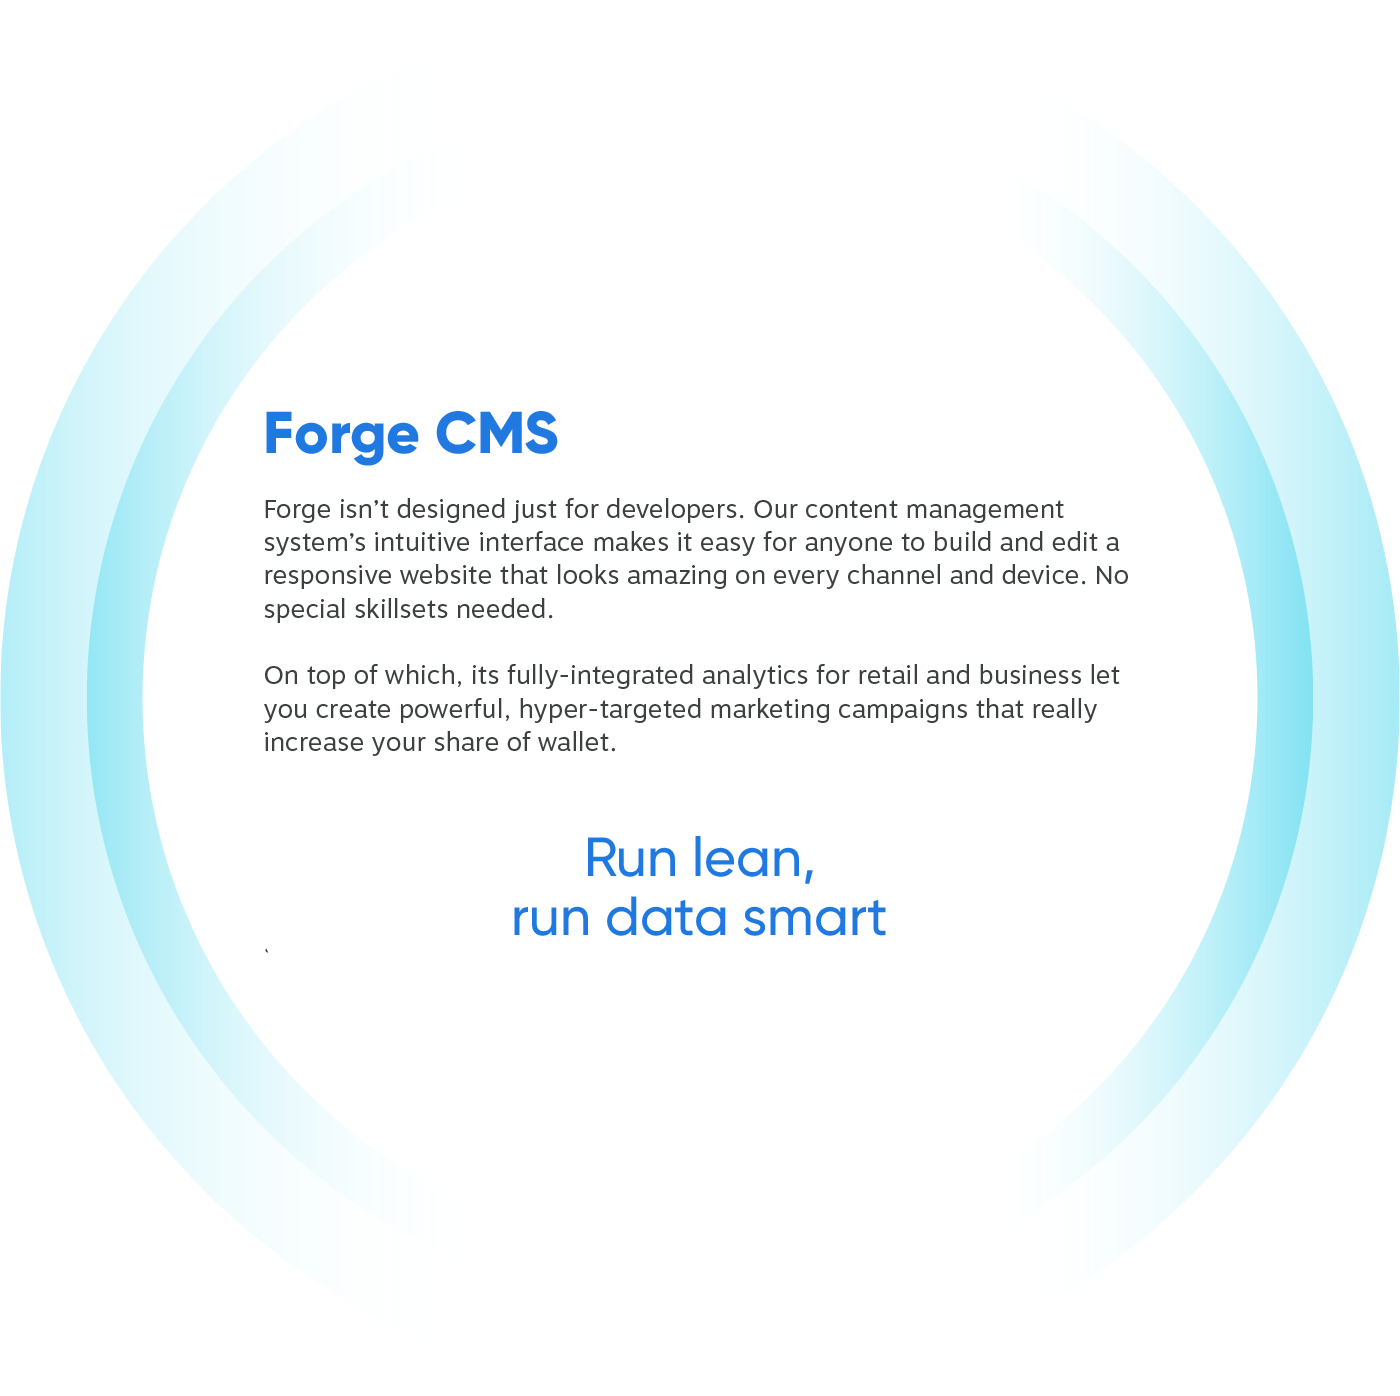 Forge CMS Layer